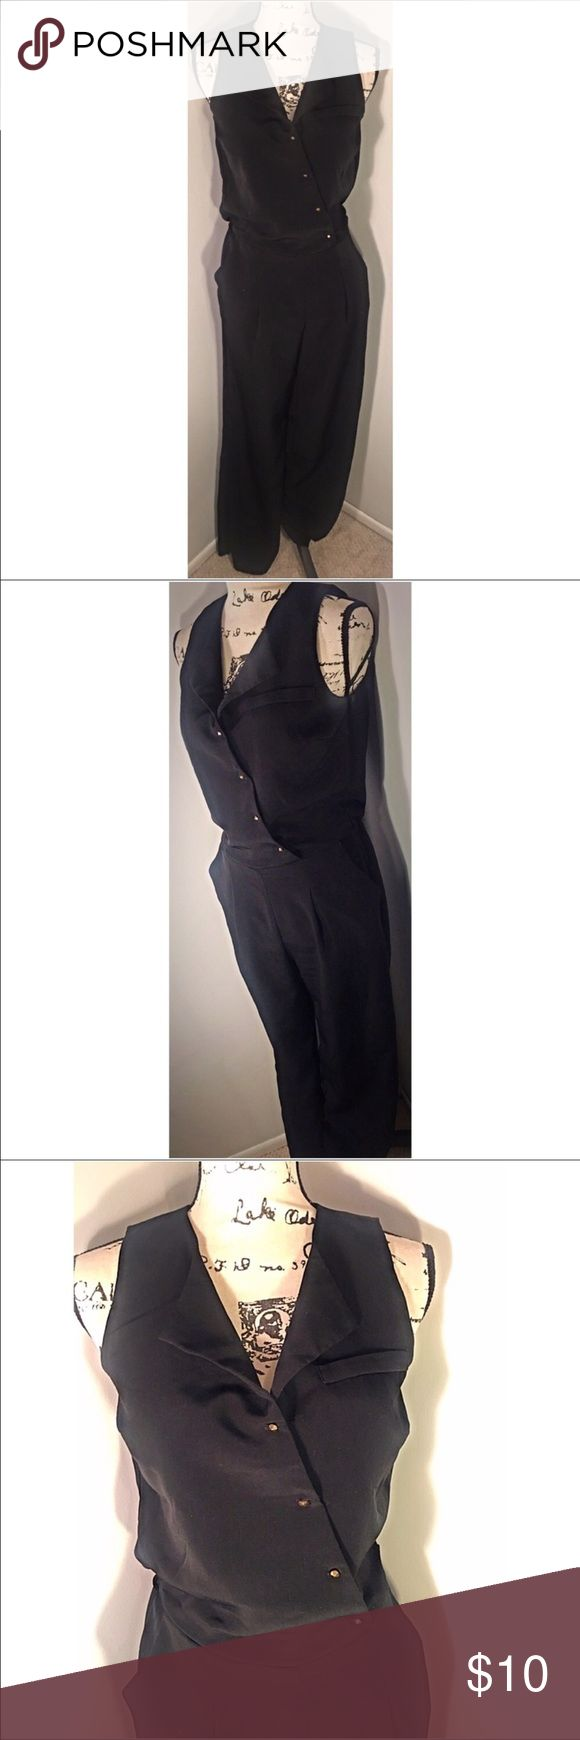 Tuxedo Style Jumpsuit Size Small Beautiful like 🆕 Forever 21 tuxedo style jumpsuit. Pyramid studded buttons. Excellent Condition. Size S.  Make this ☝🏾️treasure yours today ☺️. Don't be scared  to make an offer, you never know unless you try. Bundle  multiple items for the best savings. Pay one low price for shipping 🎁! Thanks for stepping into my closet  😘 Forever 21 Pants Jumpsuits & Rompers